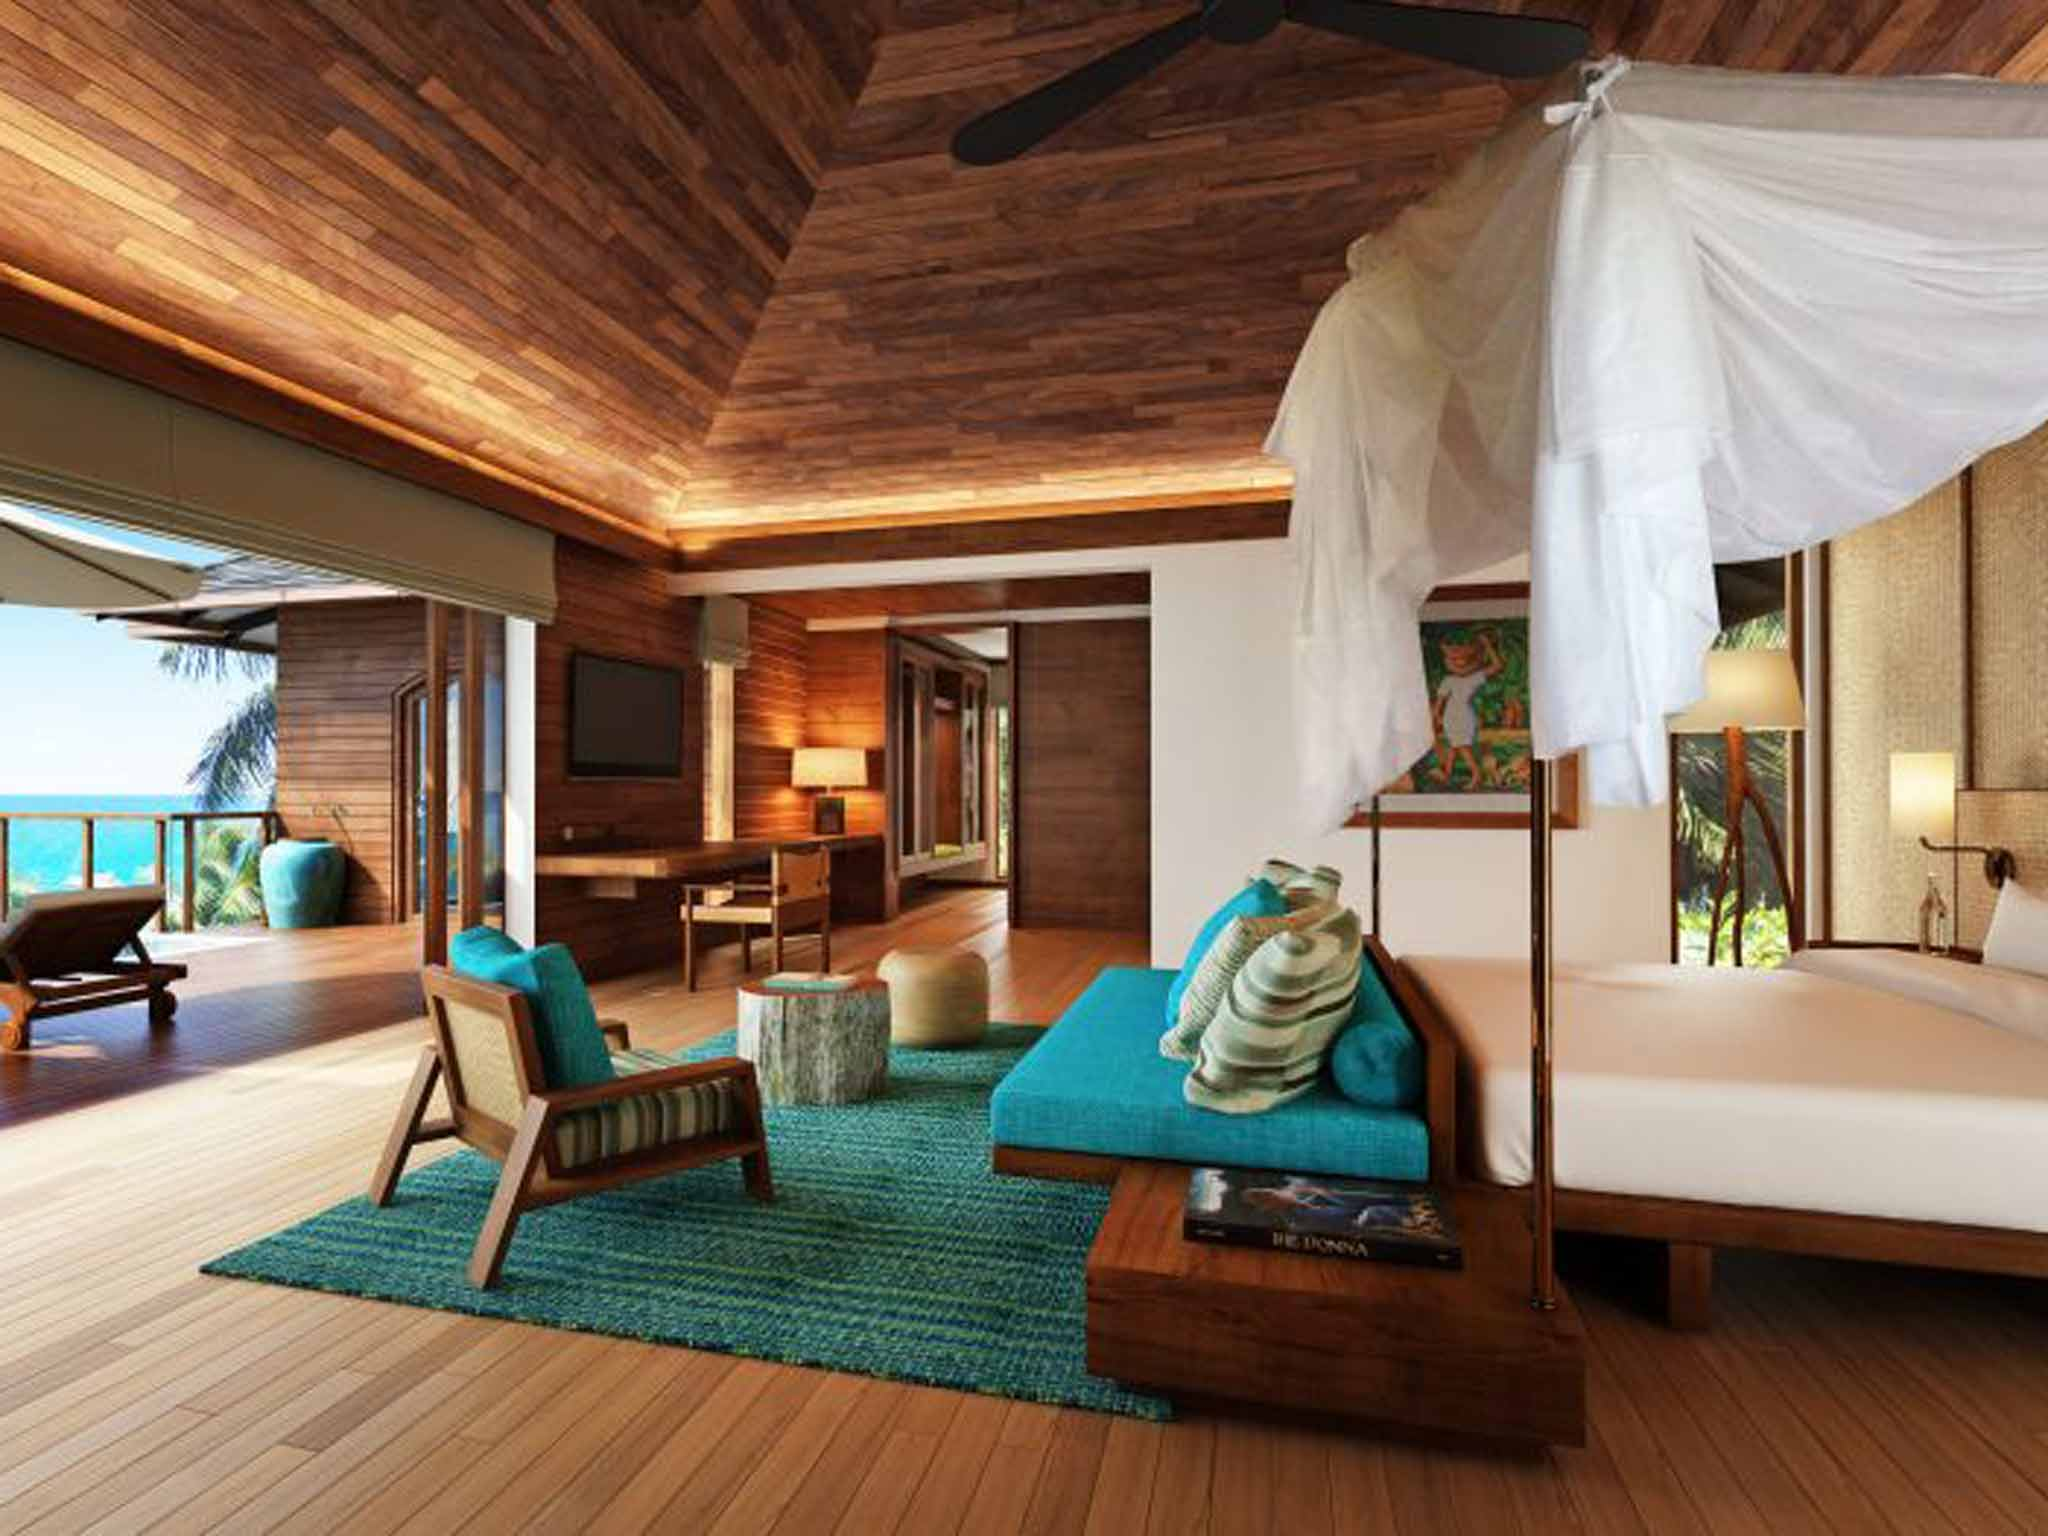 New hotels to check out in 2016 luxury lodges rat pack for Luxury independent hotels